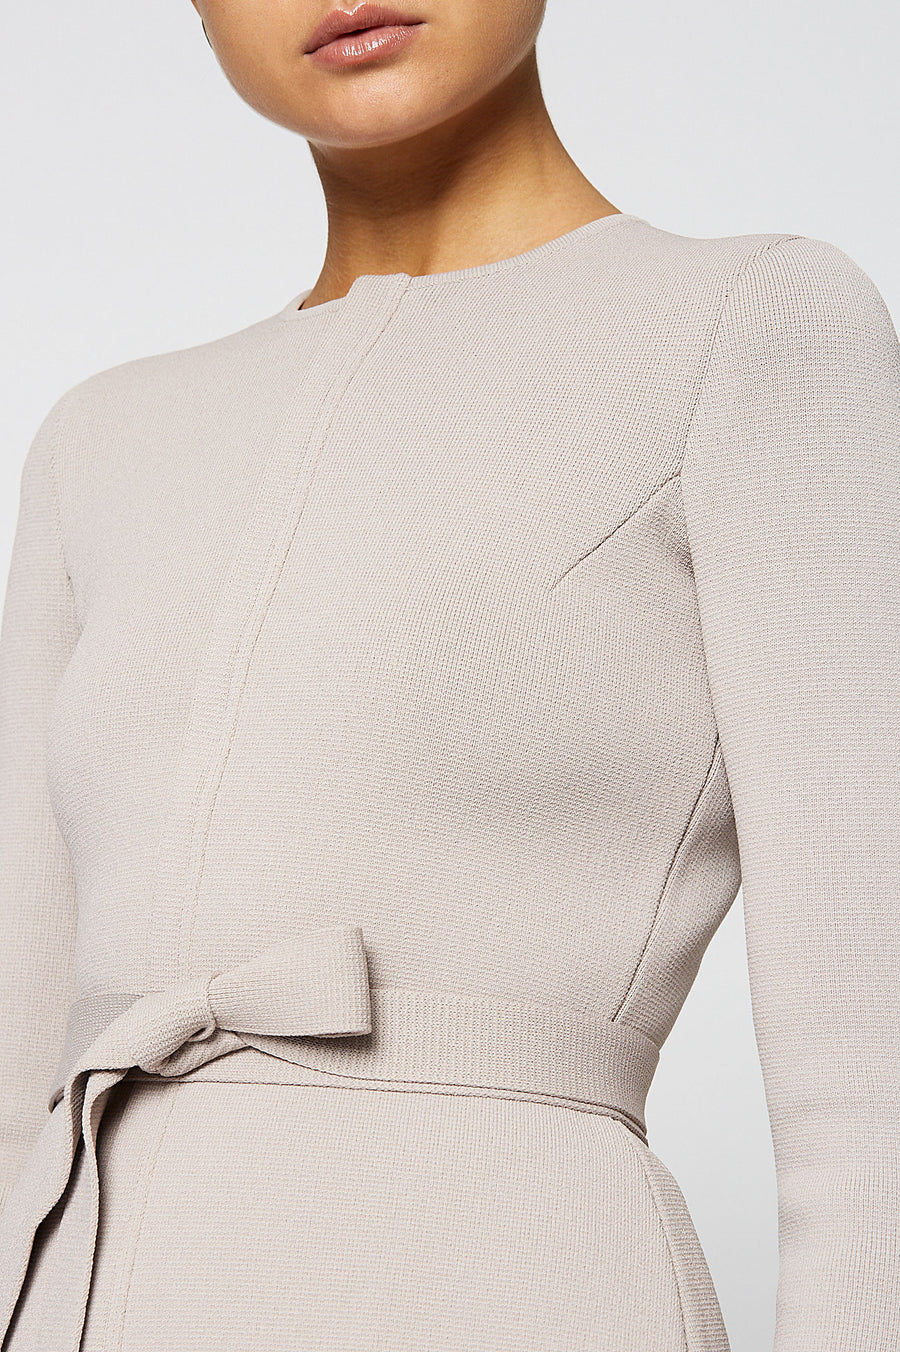 Crepe Knit Curved Hem Jacket, closes at the front with a zip, includes a separate belt, slim sleeve, round neckline, peplum style, Color Oyster